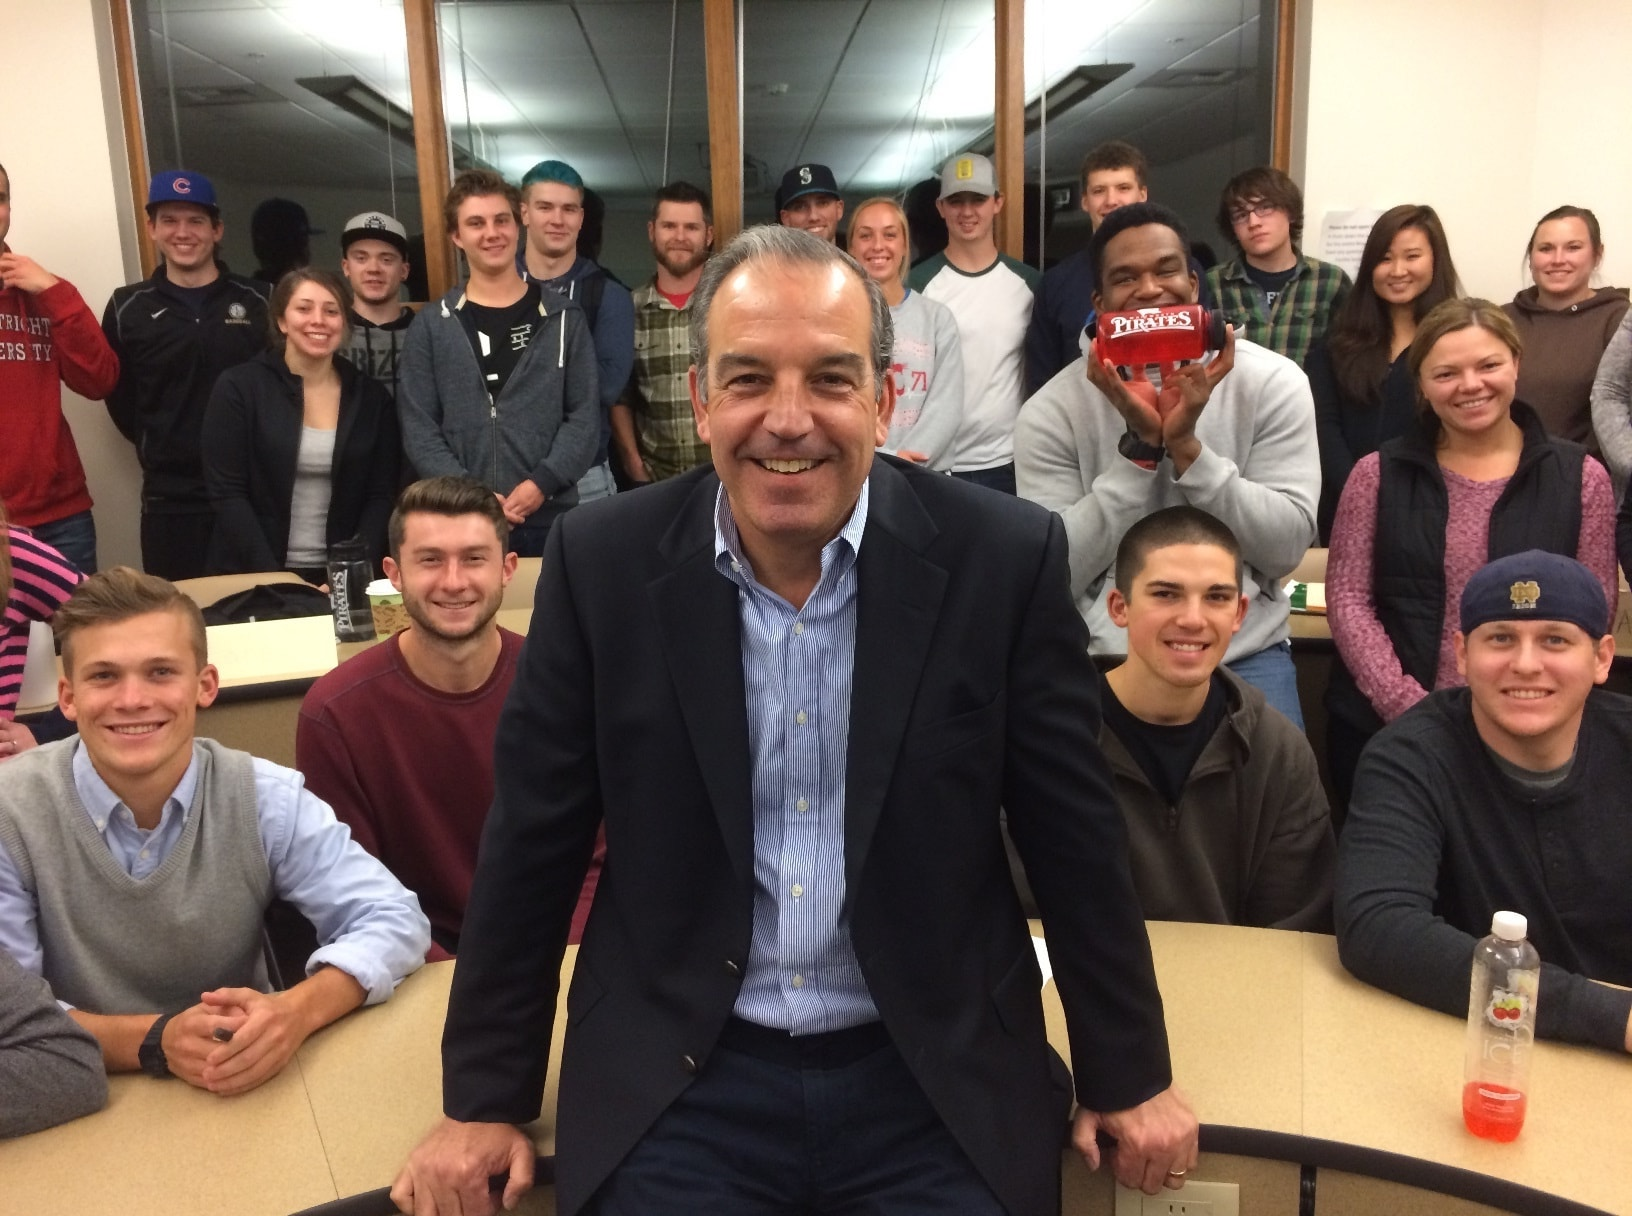 Augie Cruciotti poses with a group of Whitworth business students.